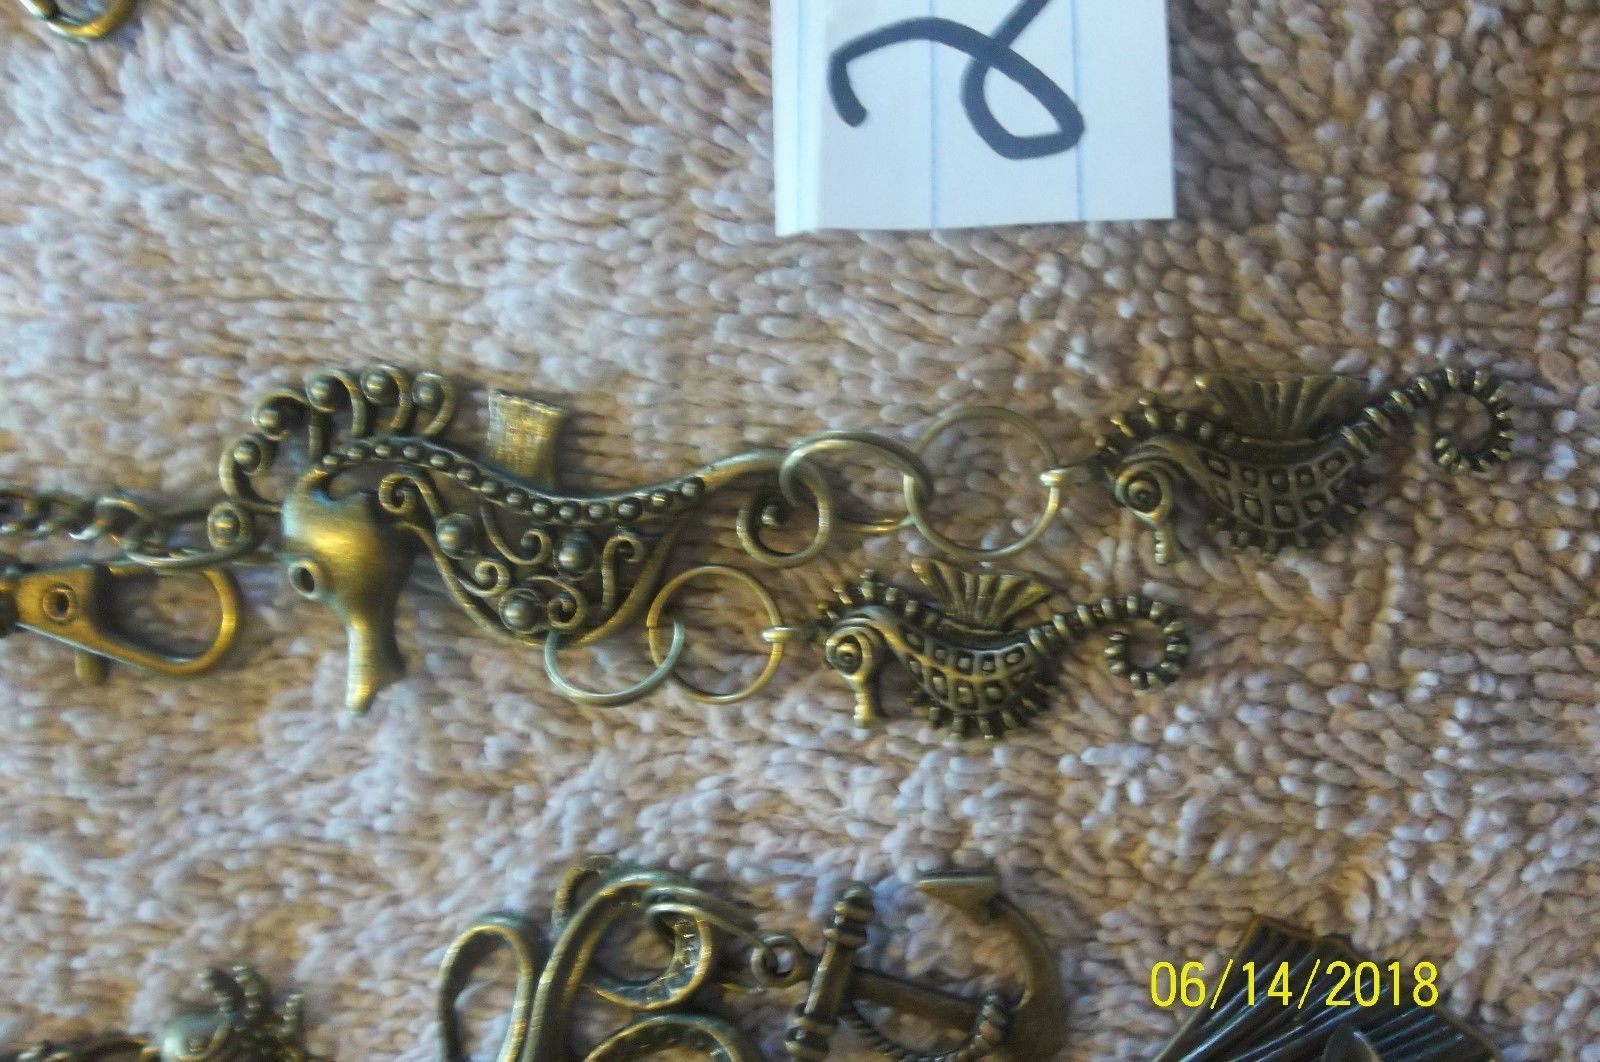 #purse jewelry bronze color keychain backpack filigree charms lot of 3 floral 21 image 5